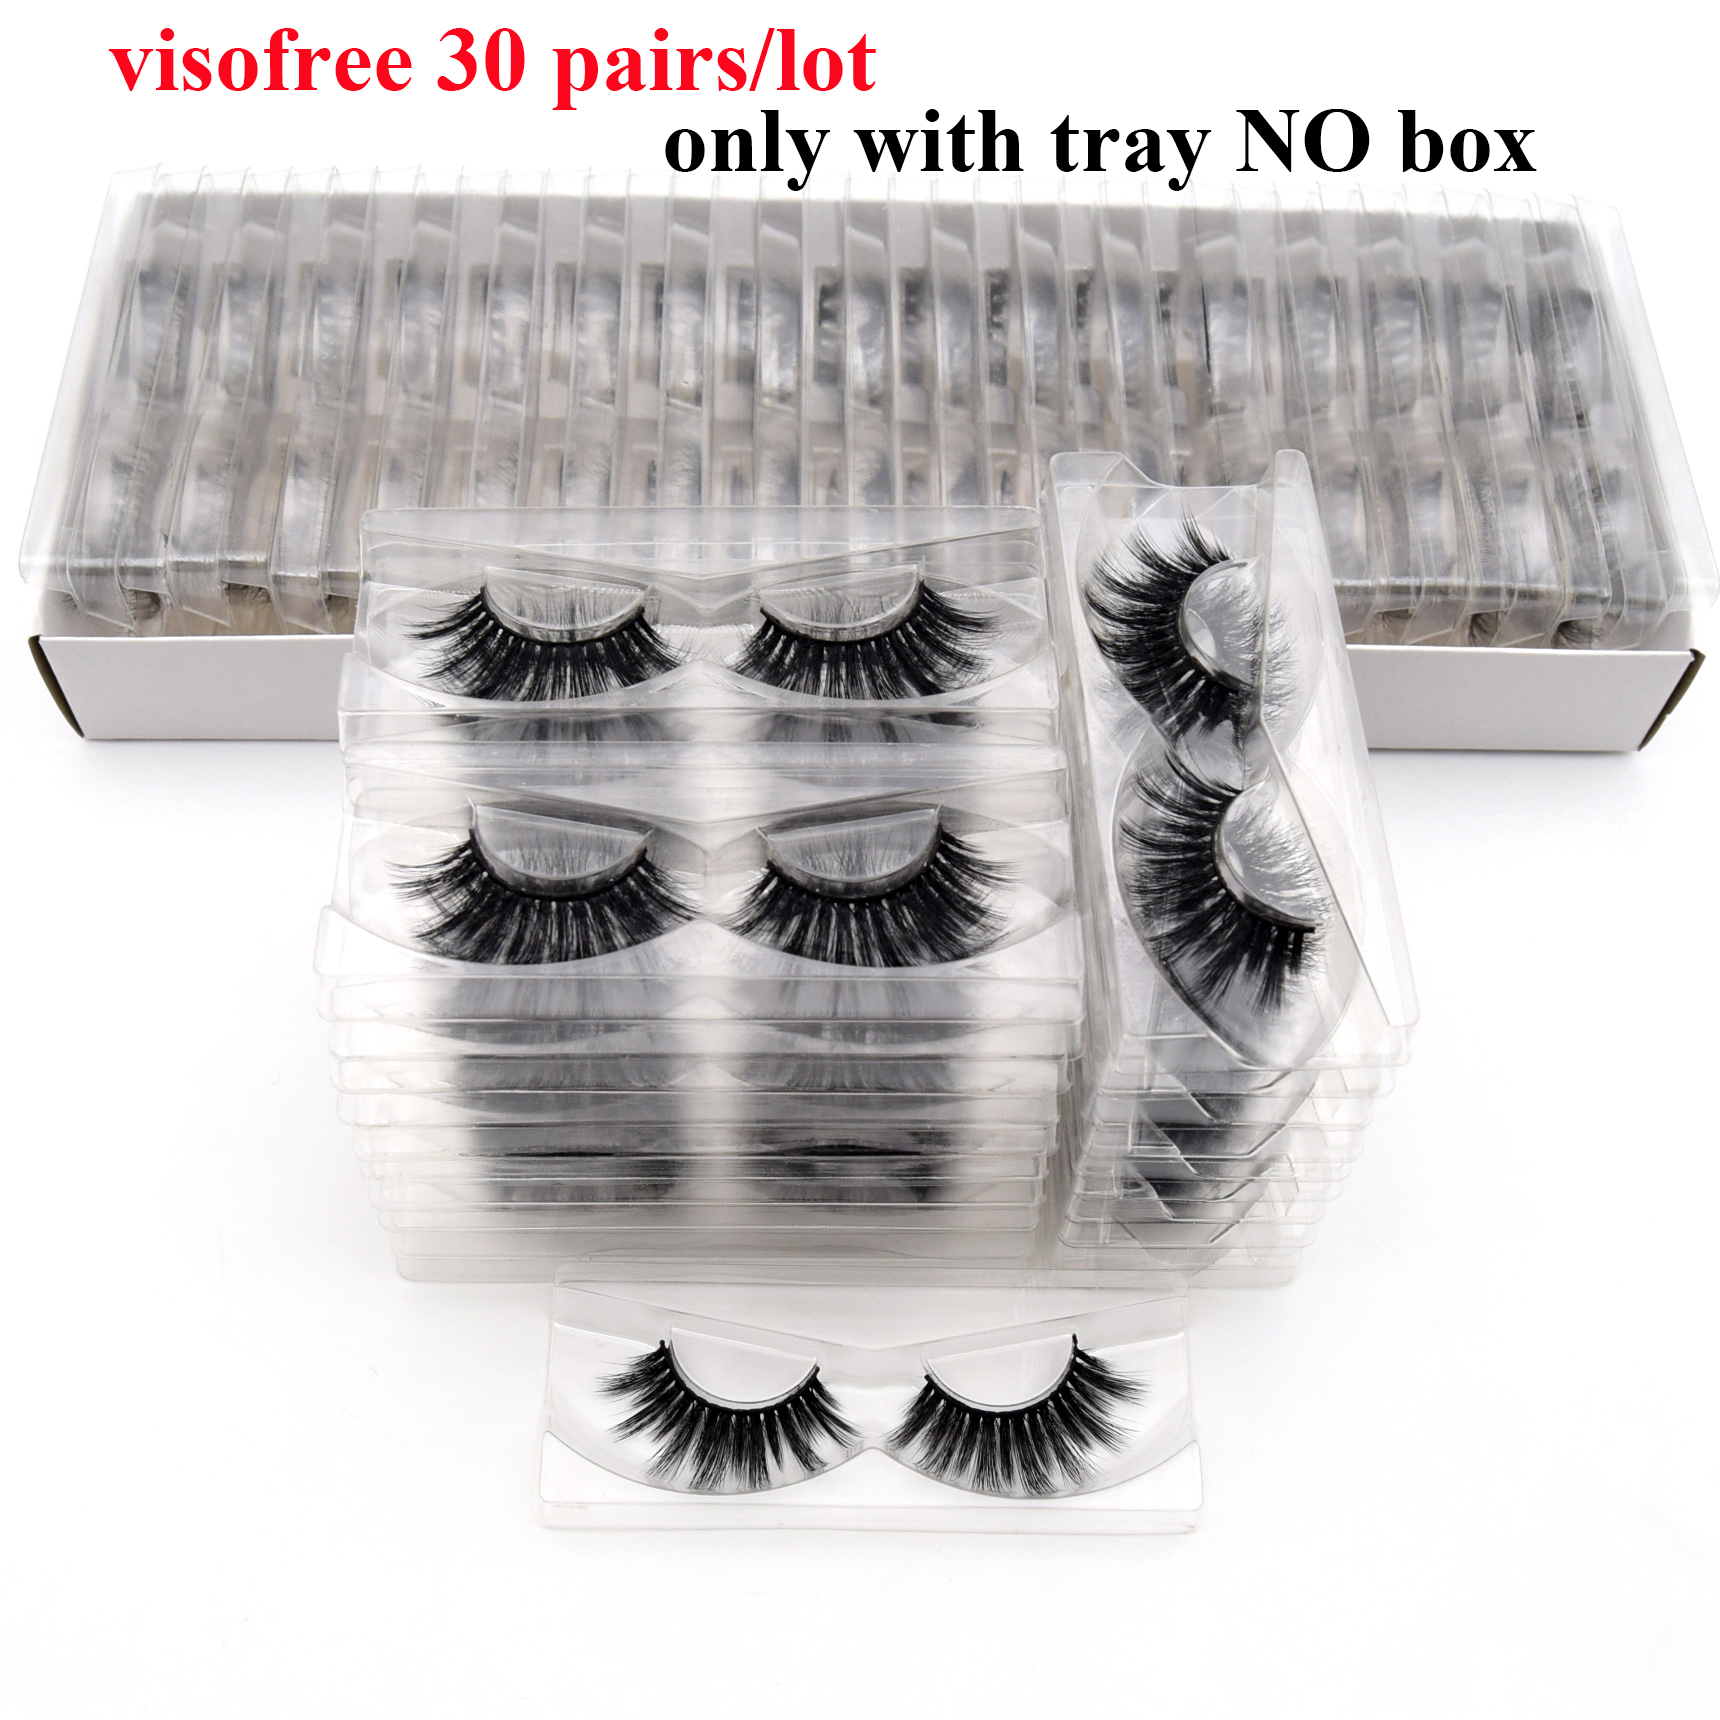 30Pairs Visofree Eyelashes 3D Mink Hair False Eyelashes Vegan Cruelty Free Natural Thick Long Eye Lashes Makeup Beauty Extension